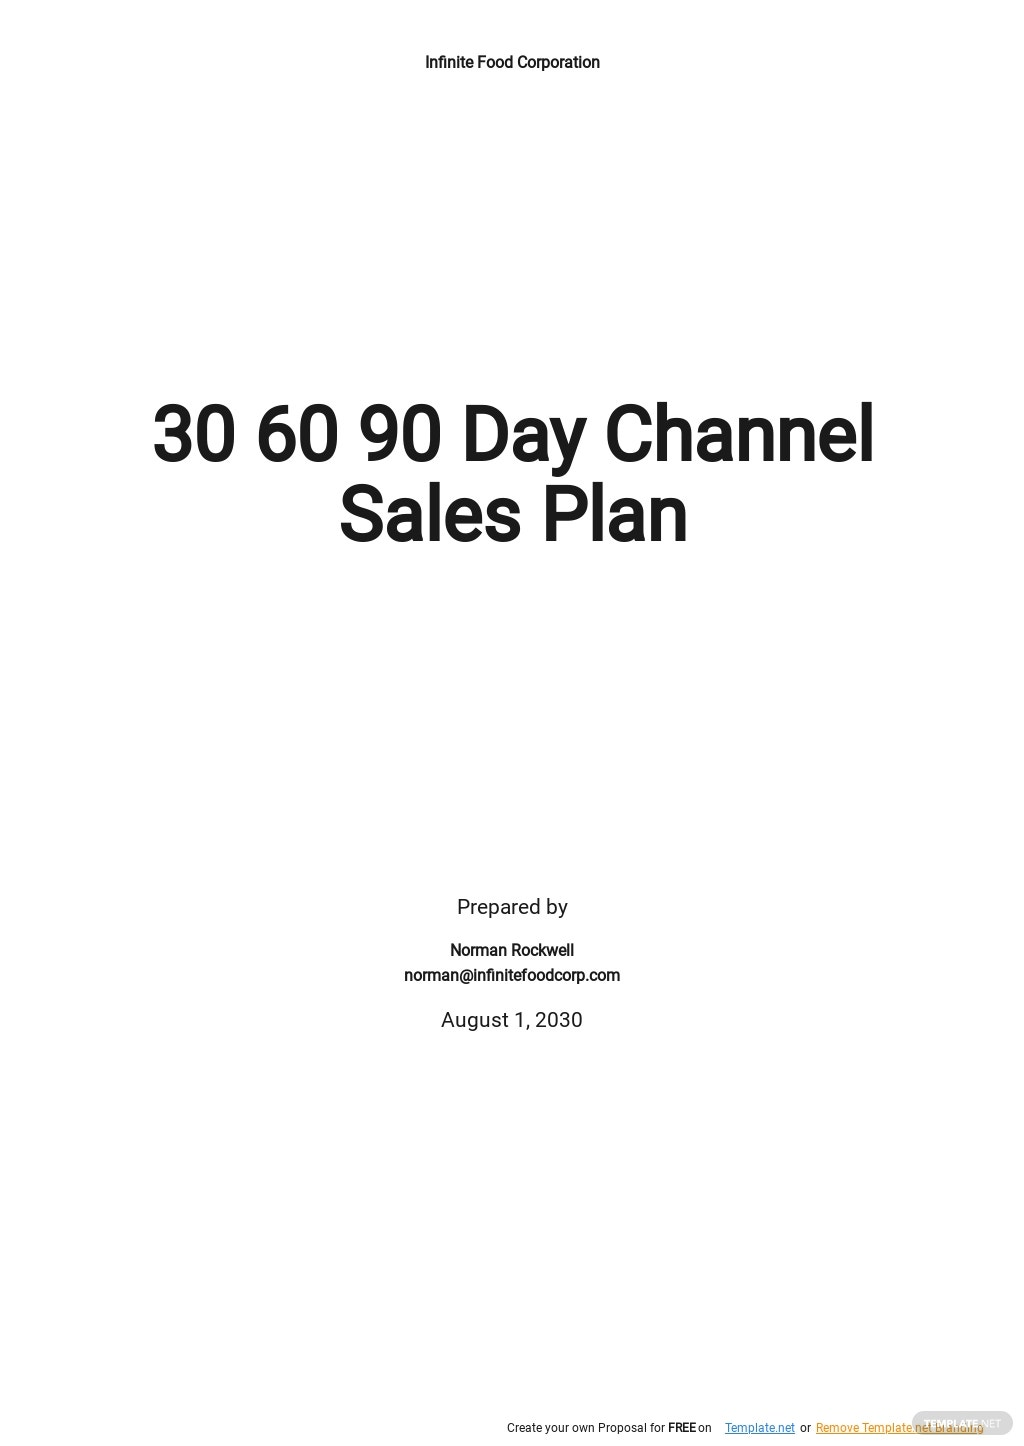 30 60 90 Day Channel Sales Plan Template.jpe